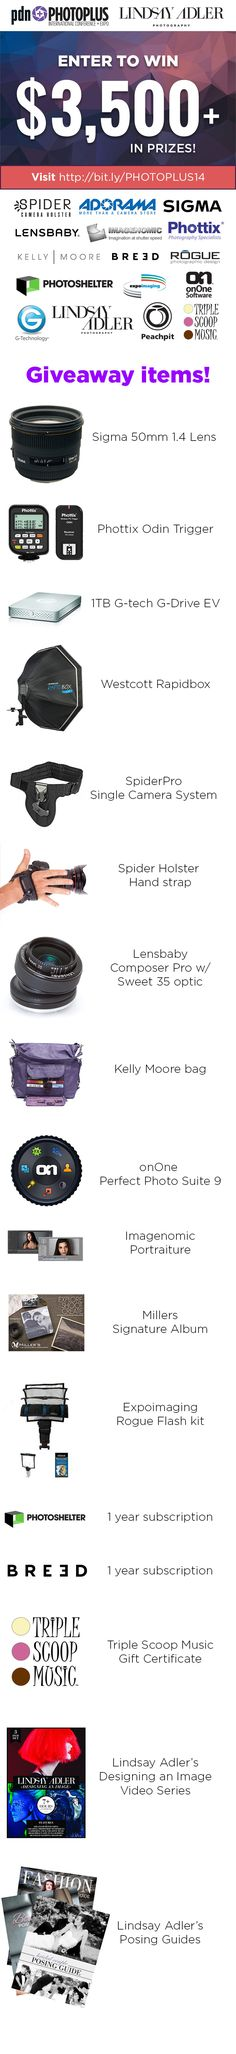 It's about the photoplus Lindsay is having this week!